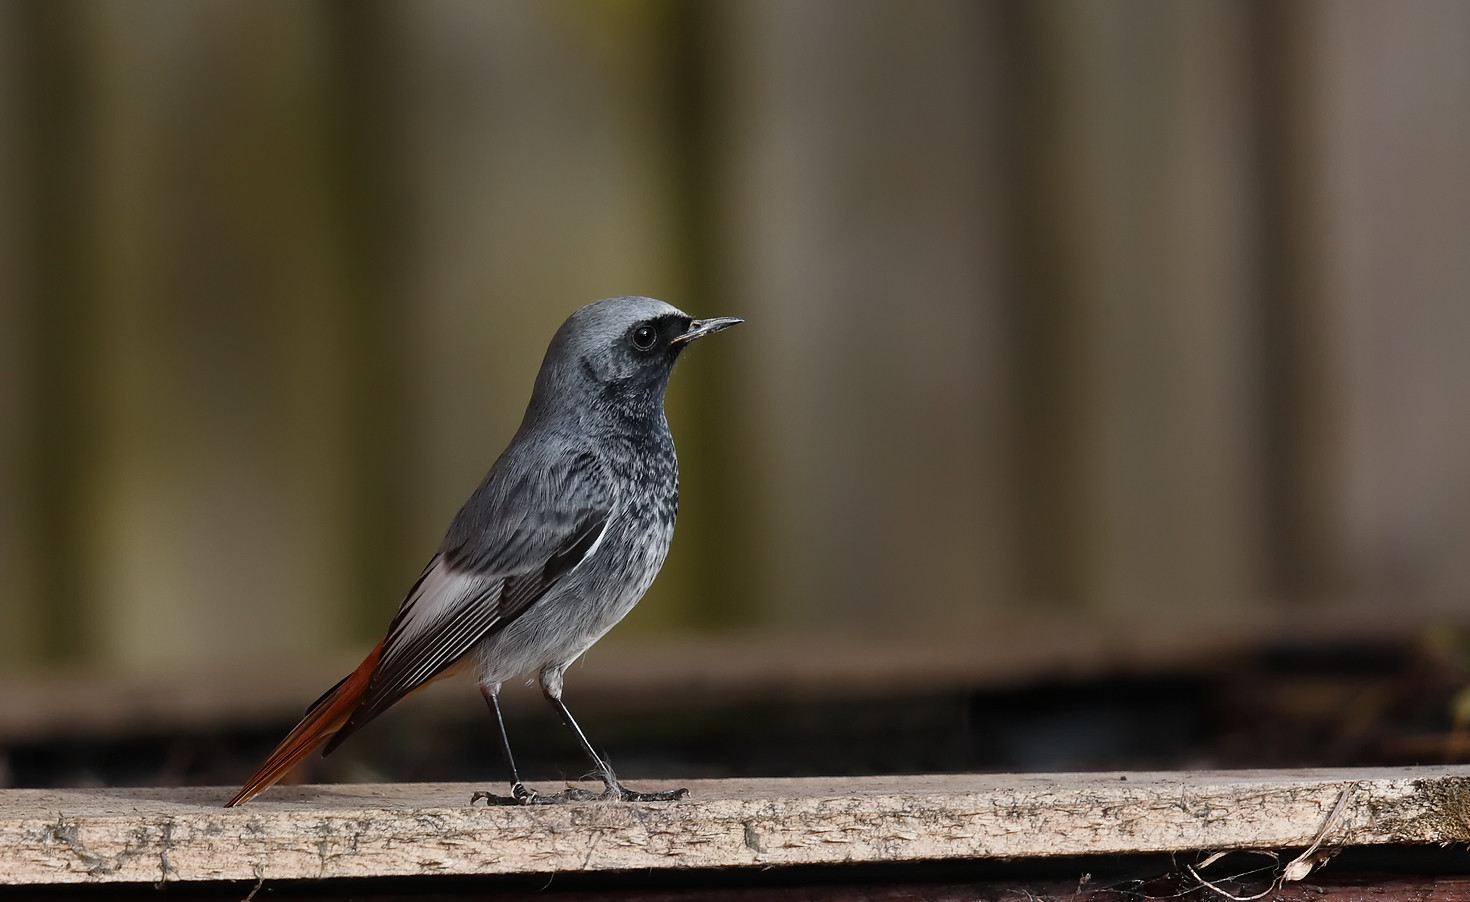 Black Redstart - on a wood pallett